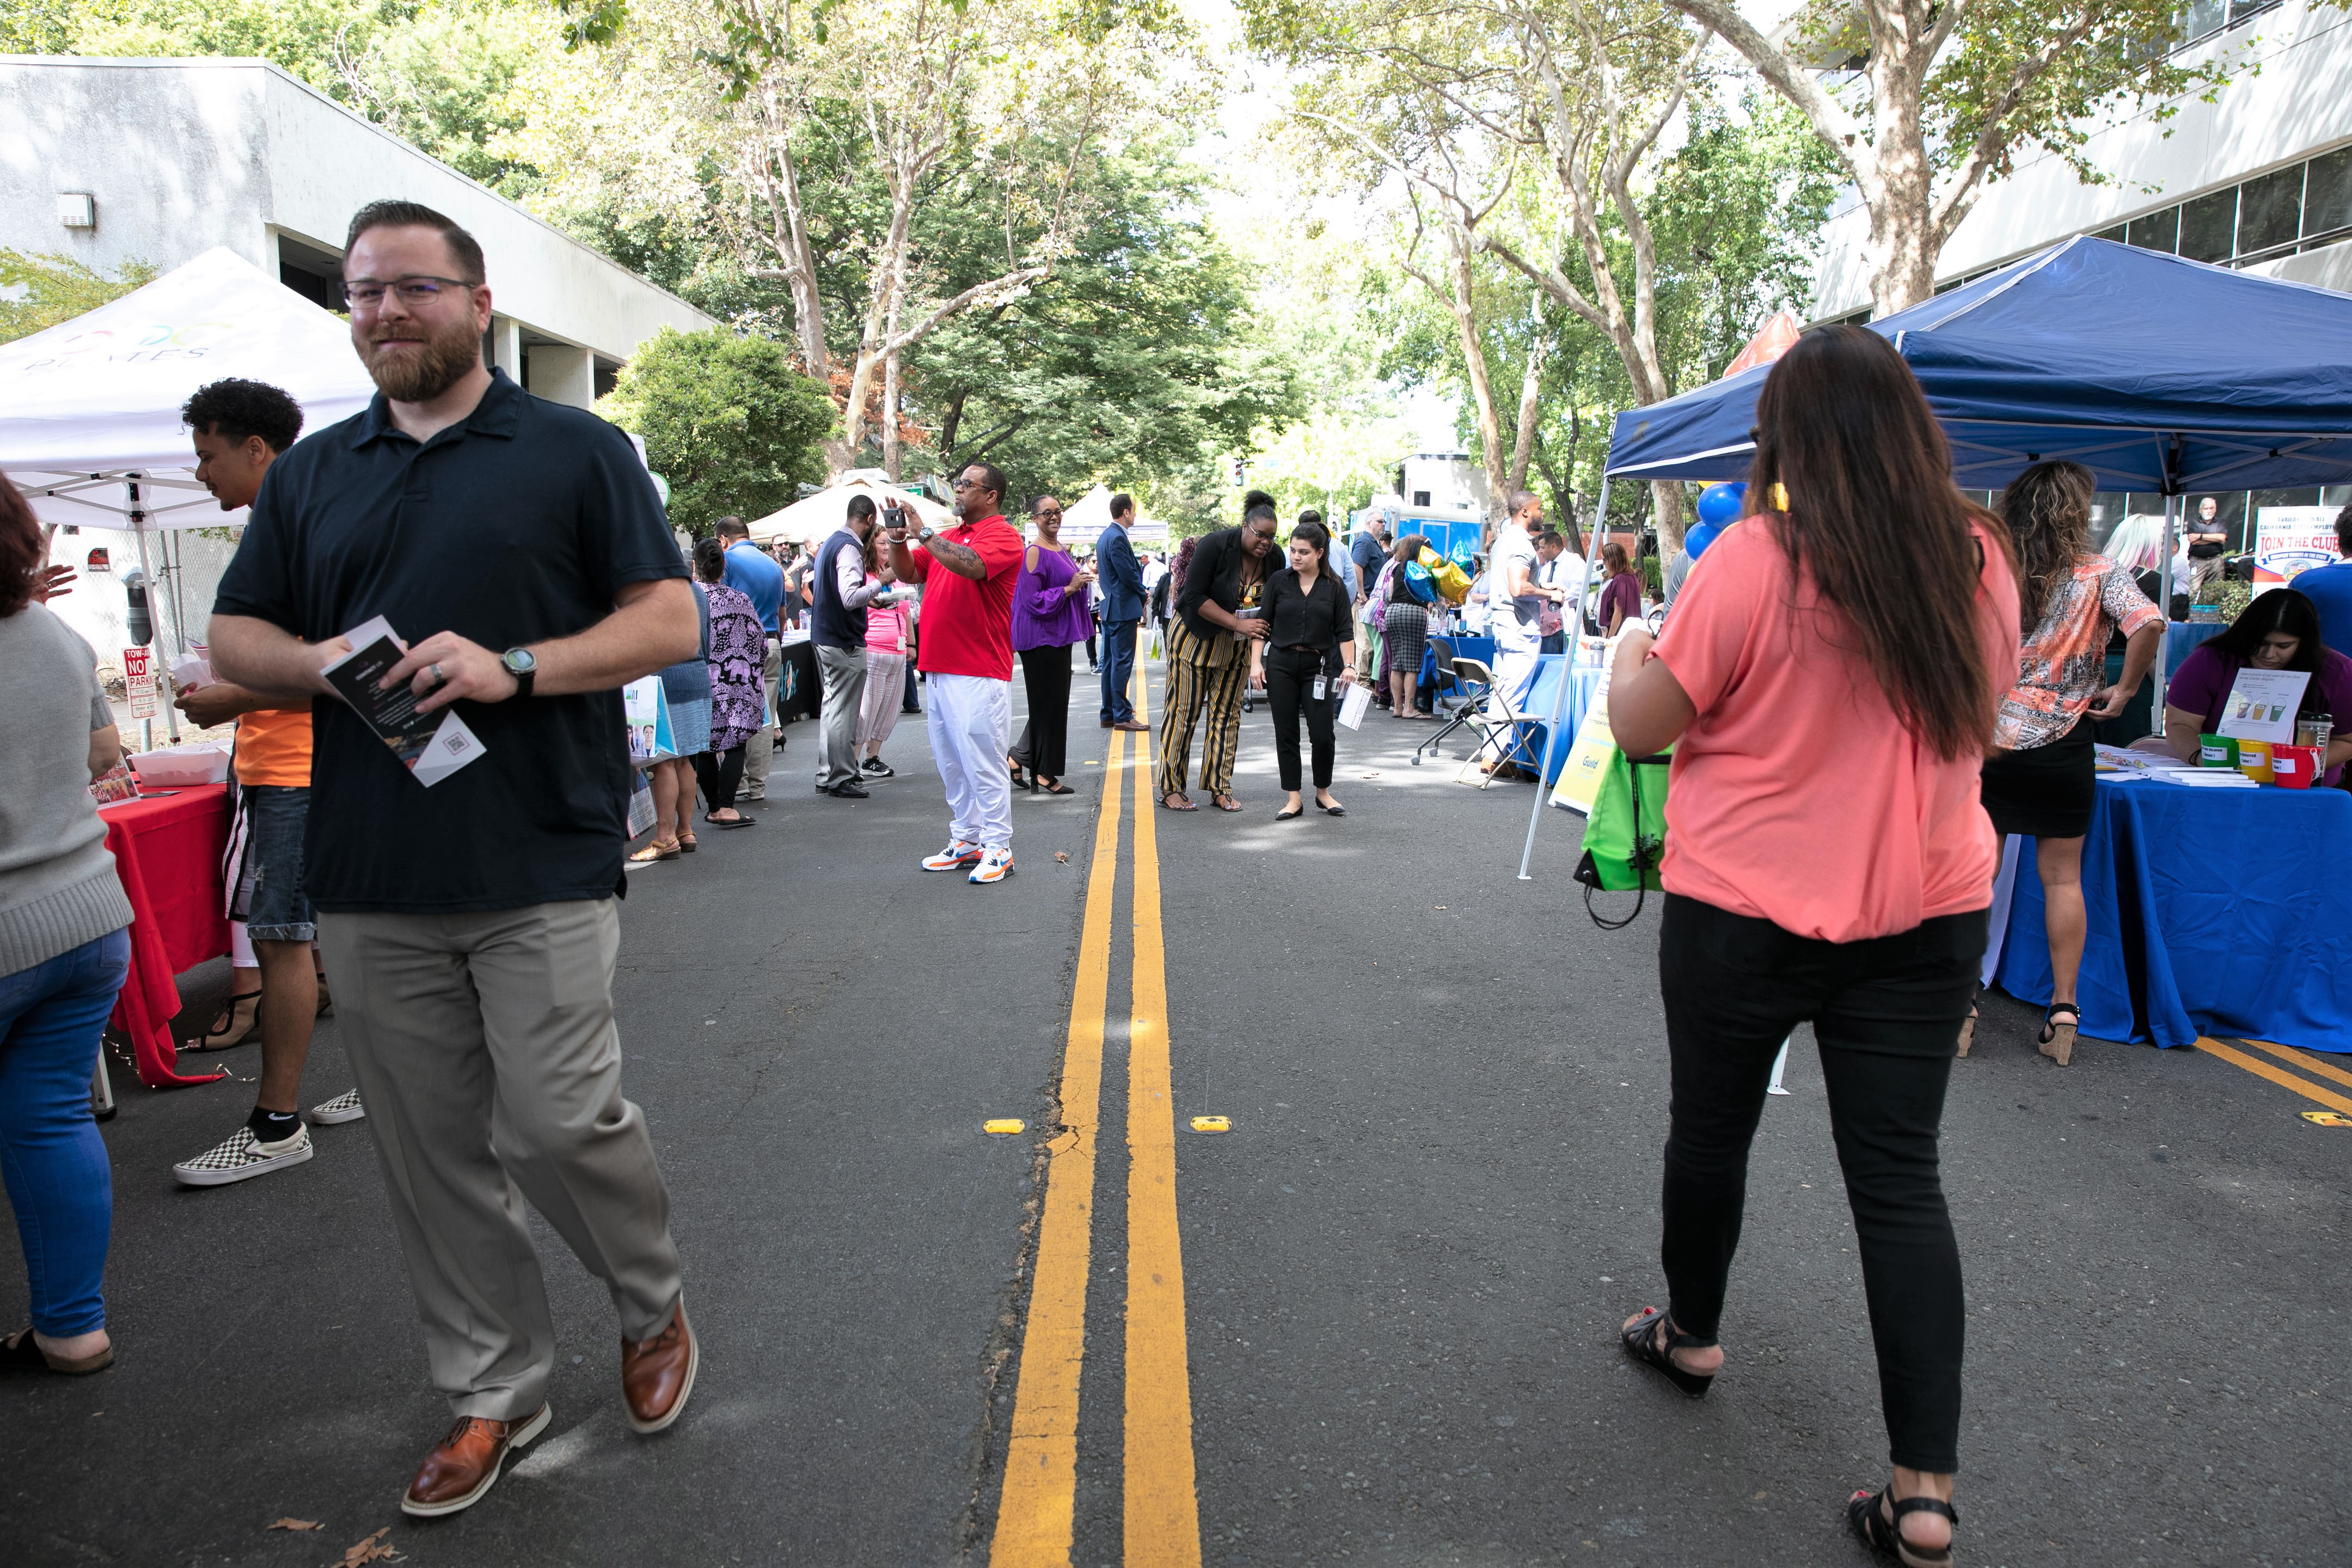 Men and women walk along a street lined with pop-up tents.